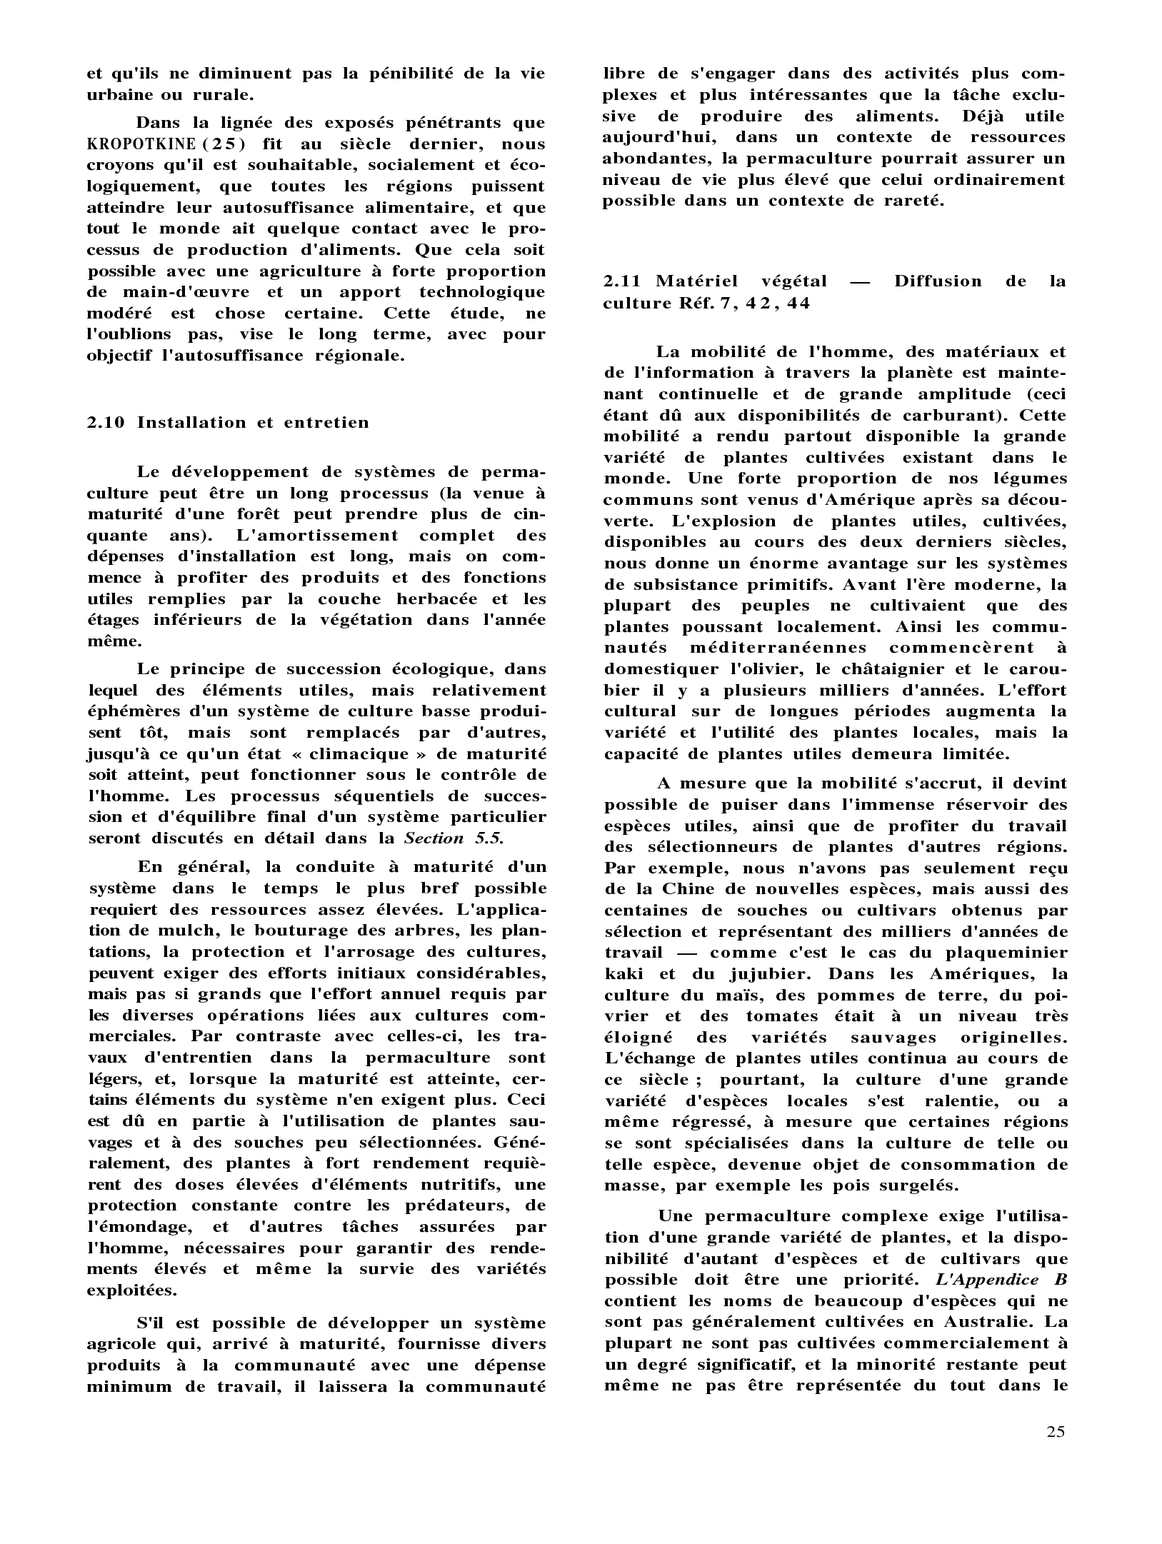 Page 25